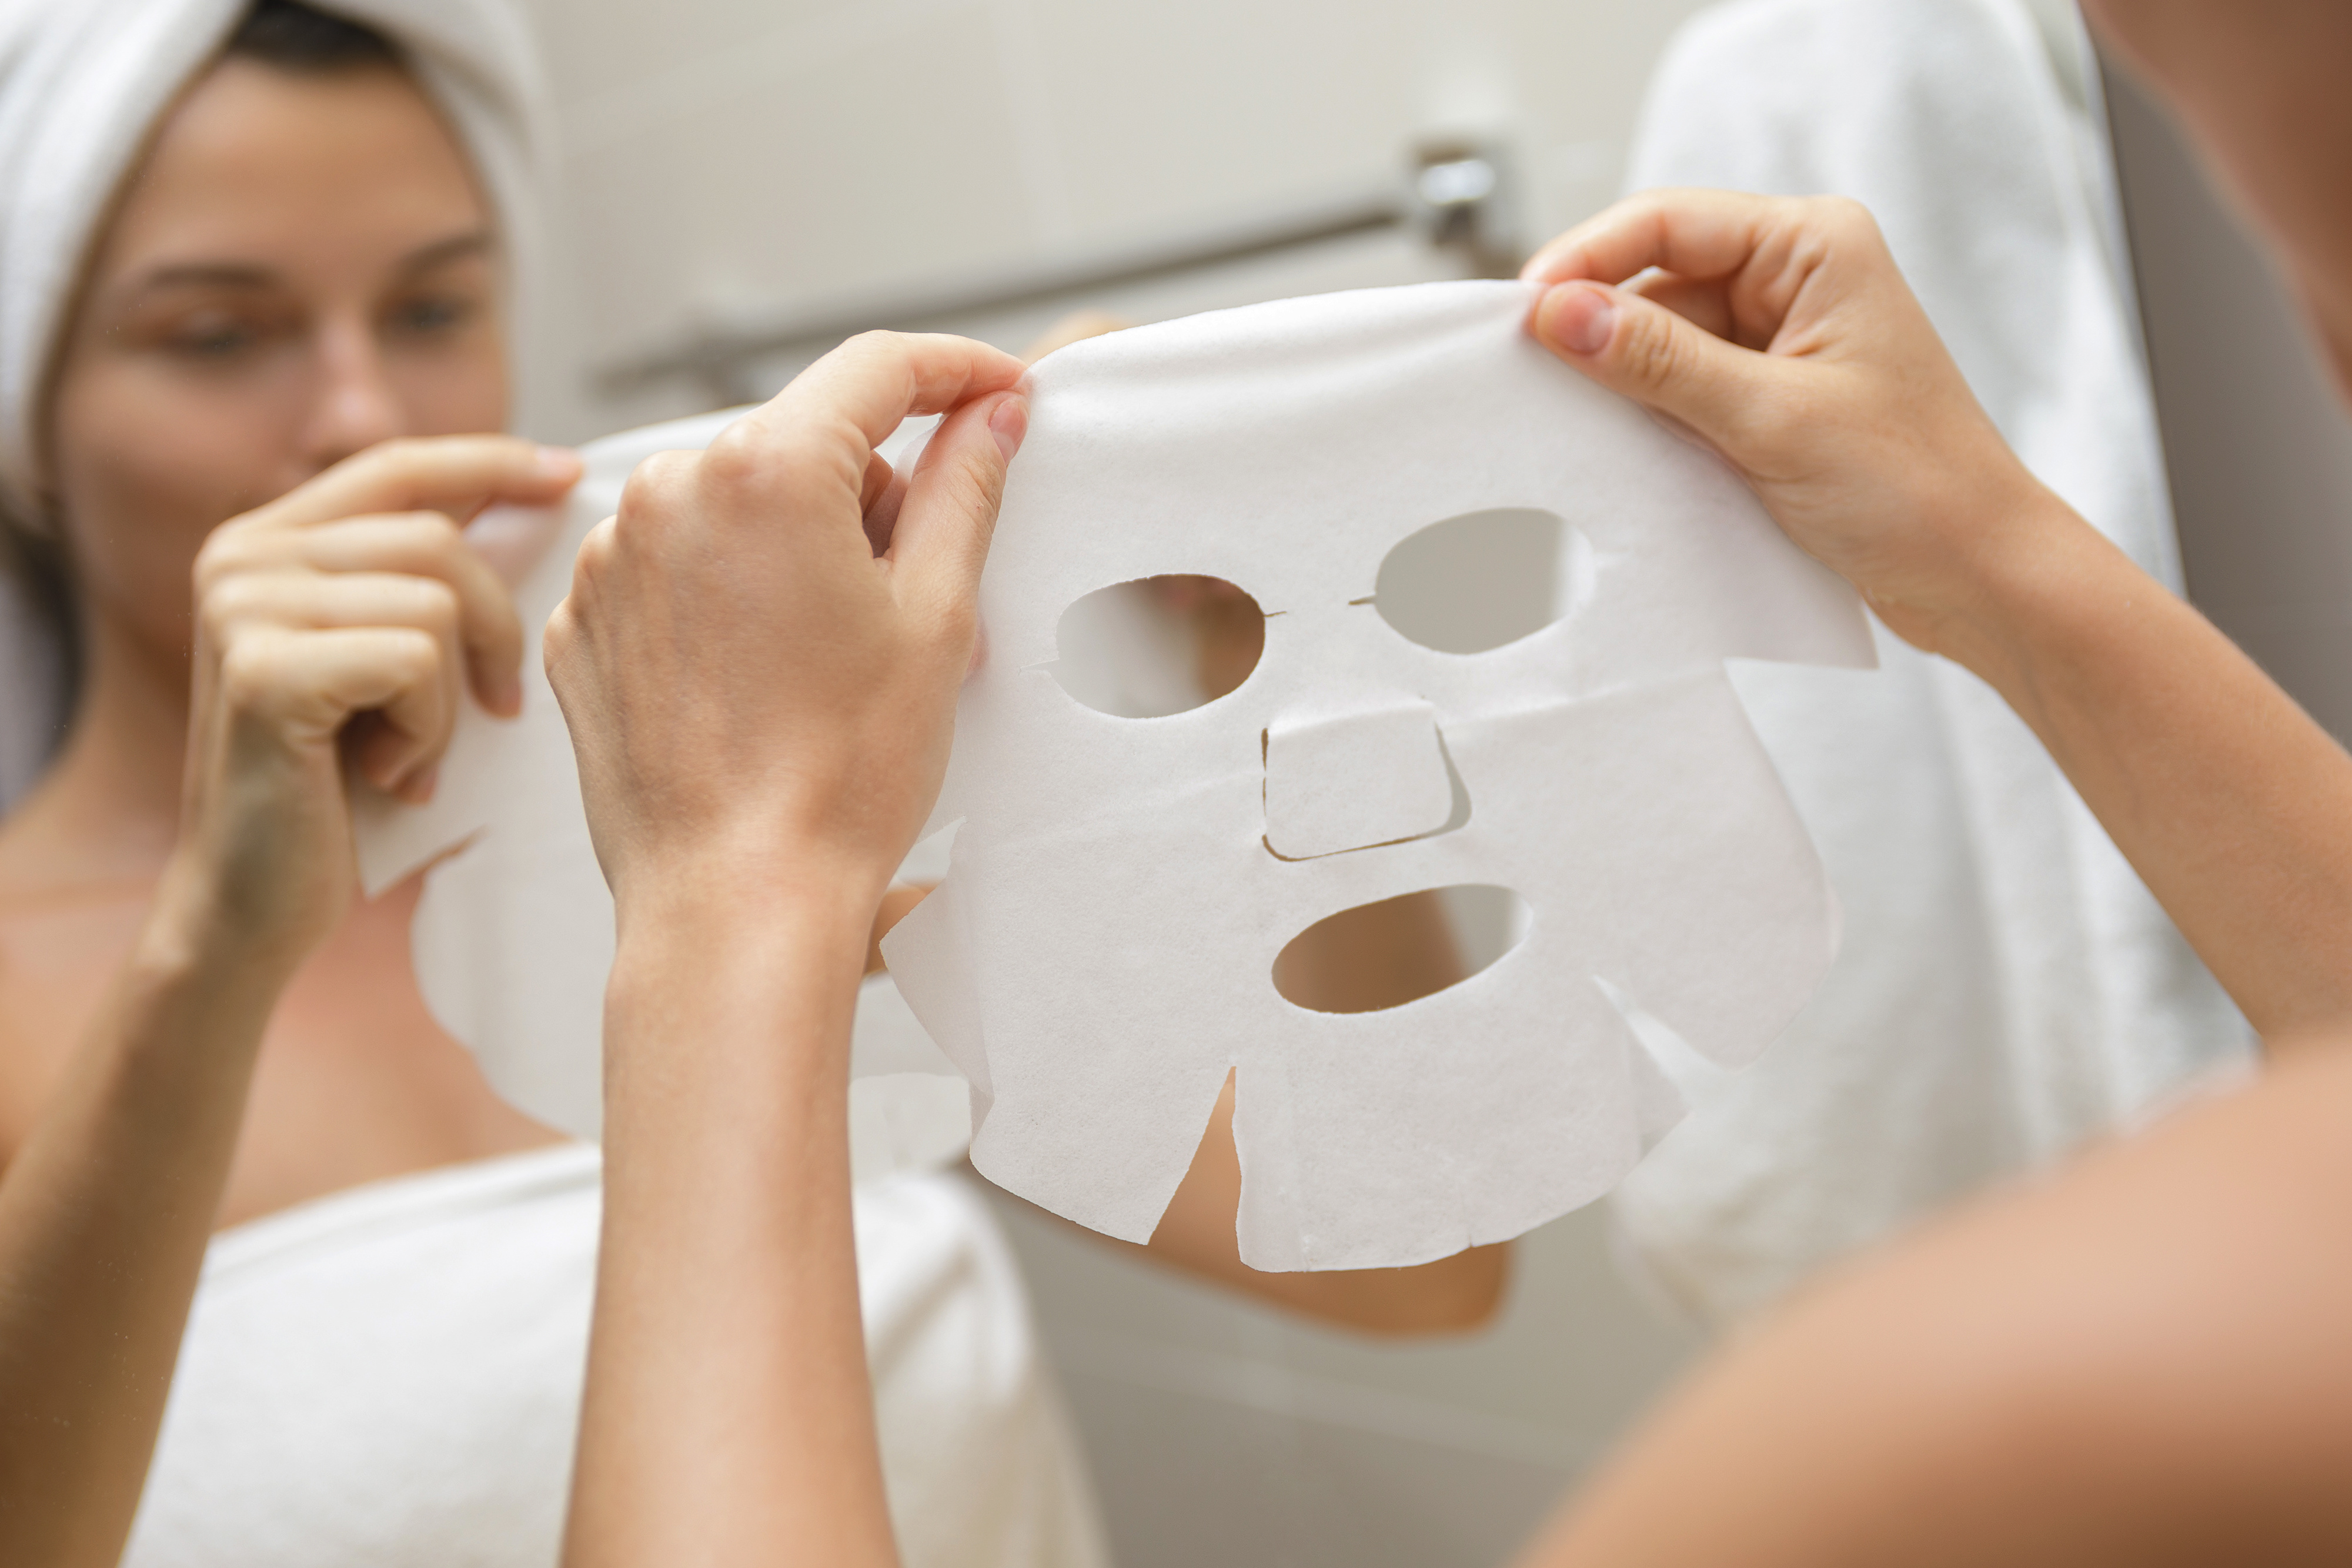 Korean skincare Spa at home. Woman in bathroom is applying facial sheet mask